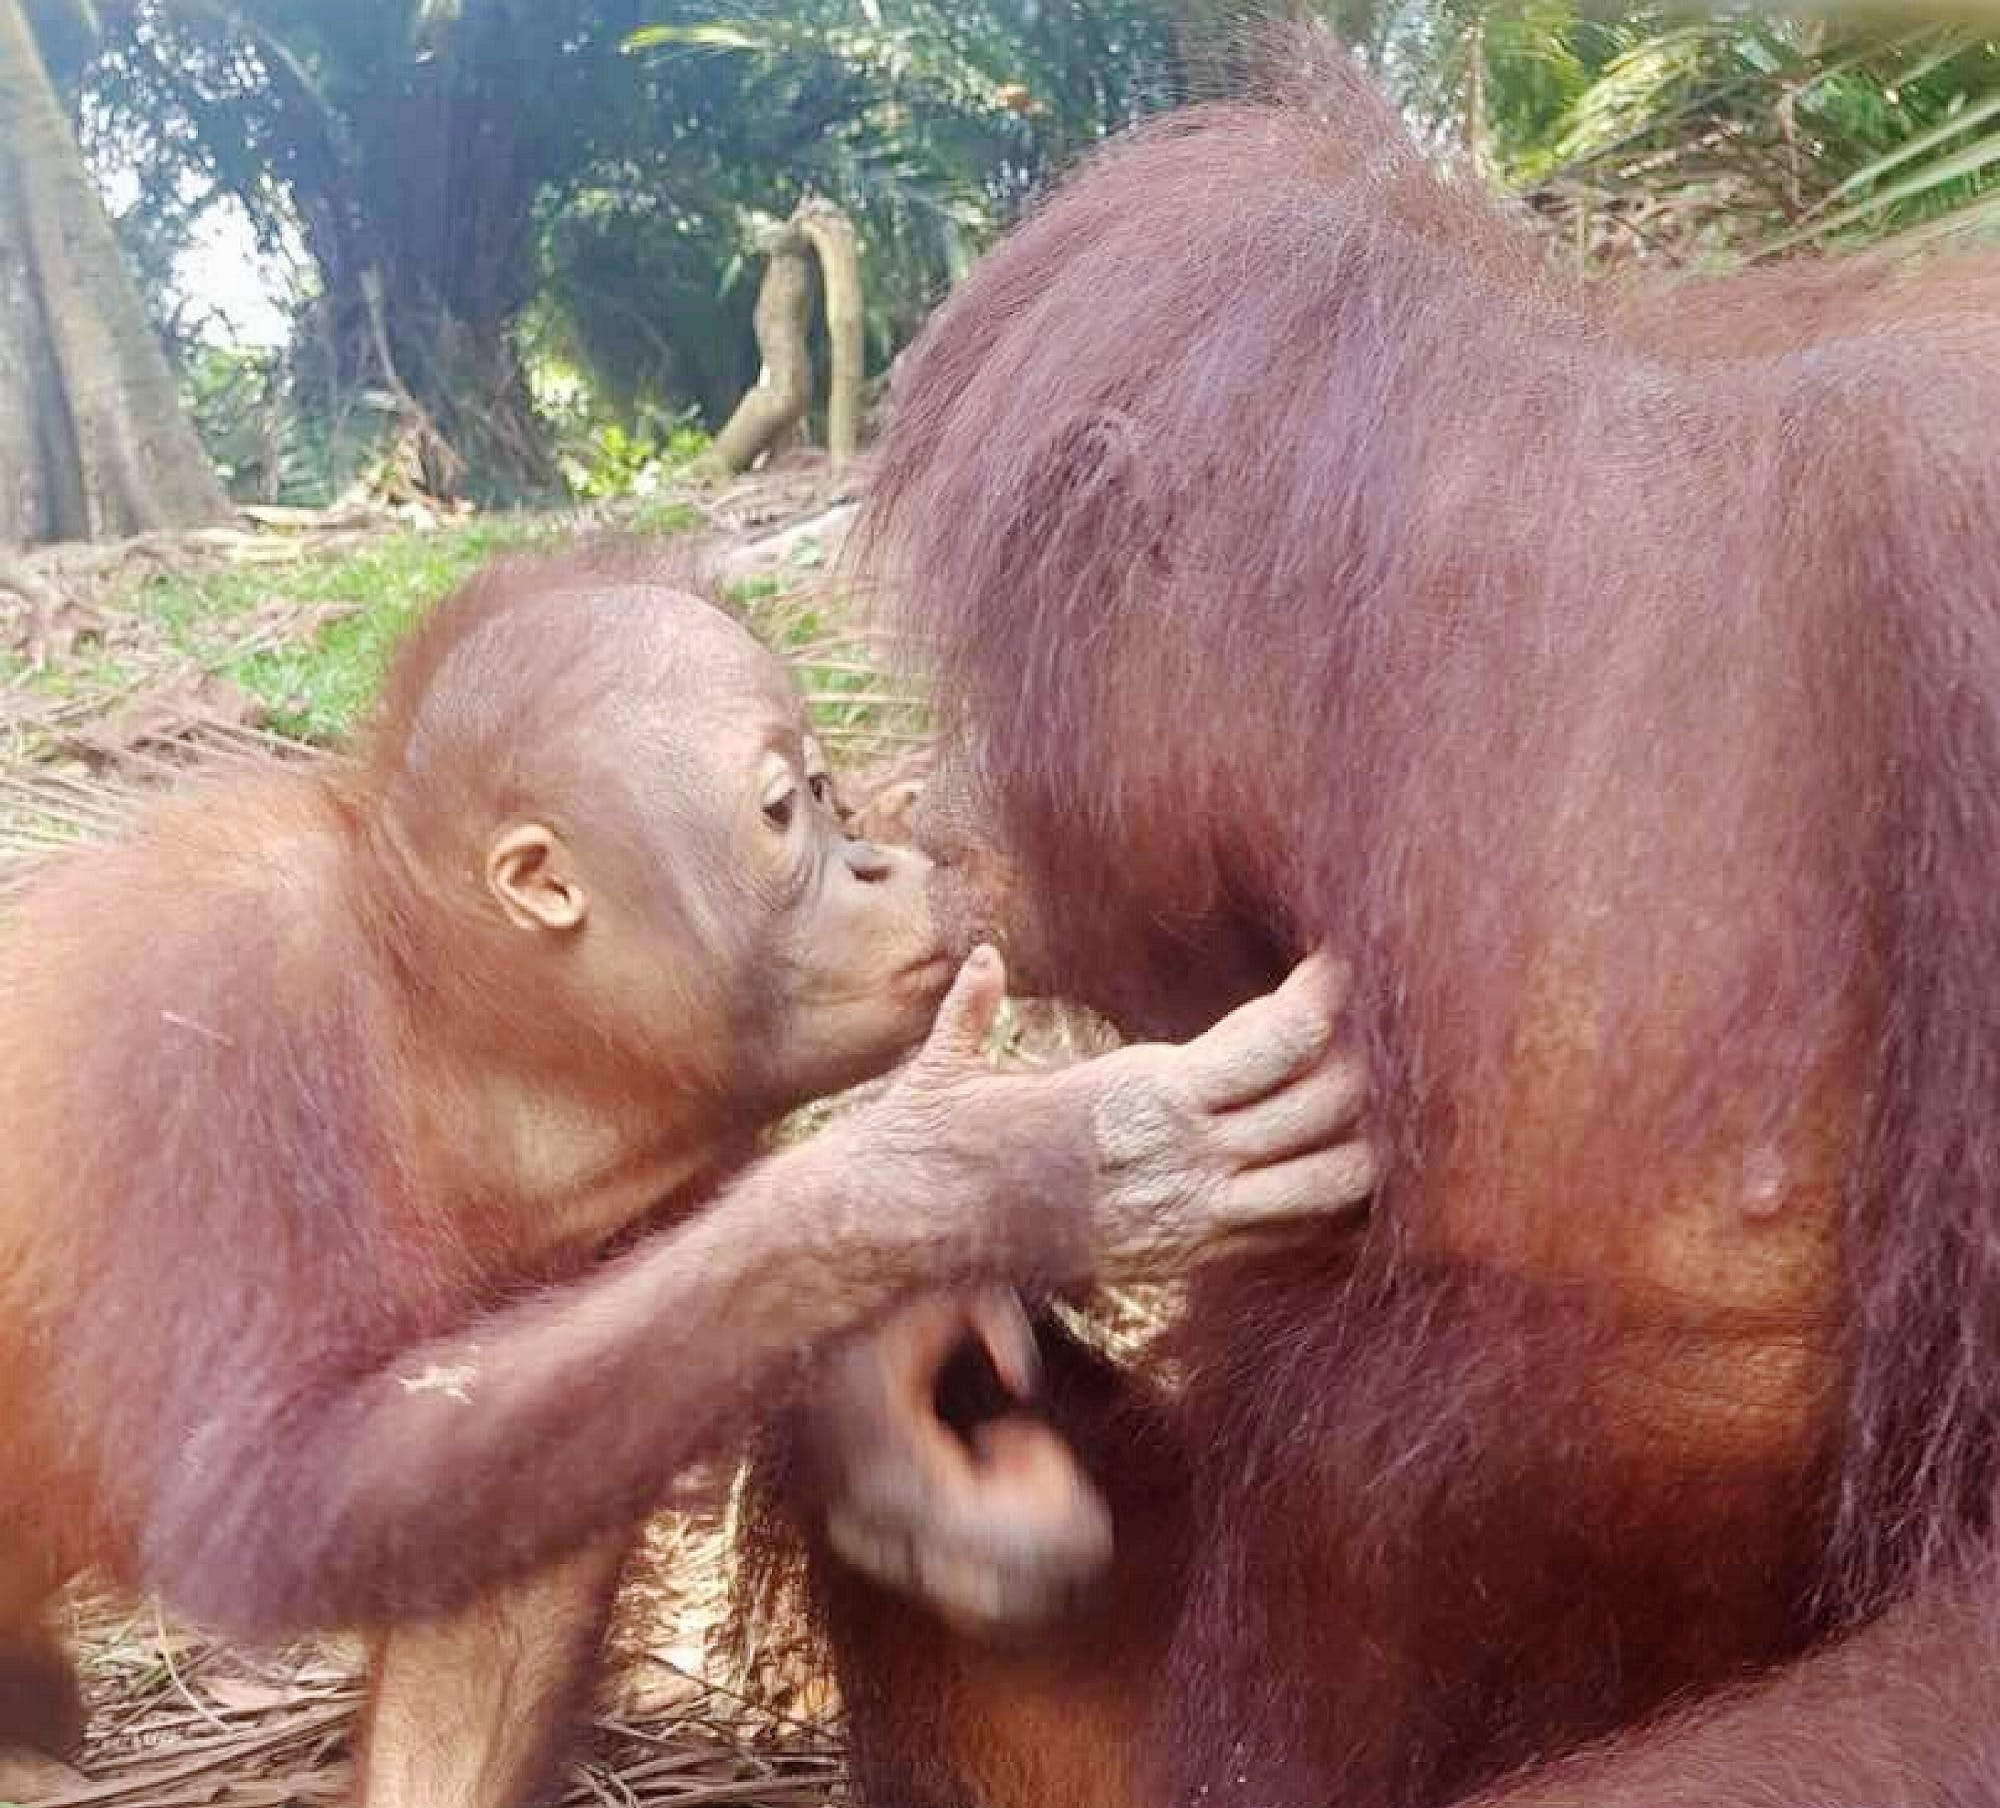 Orangutan Education and Conservation Assistant